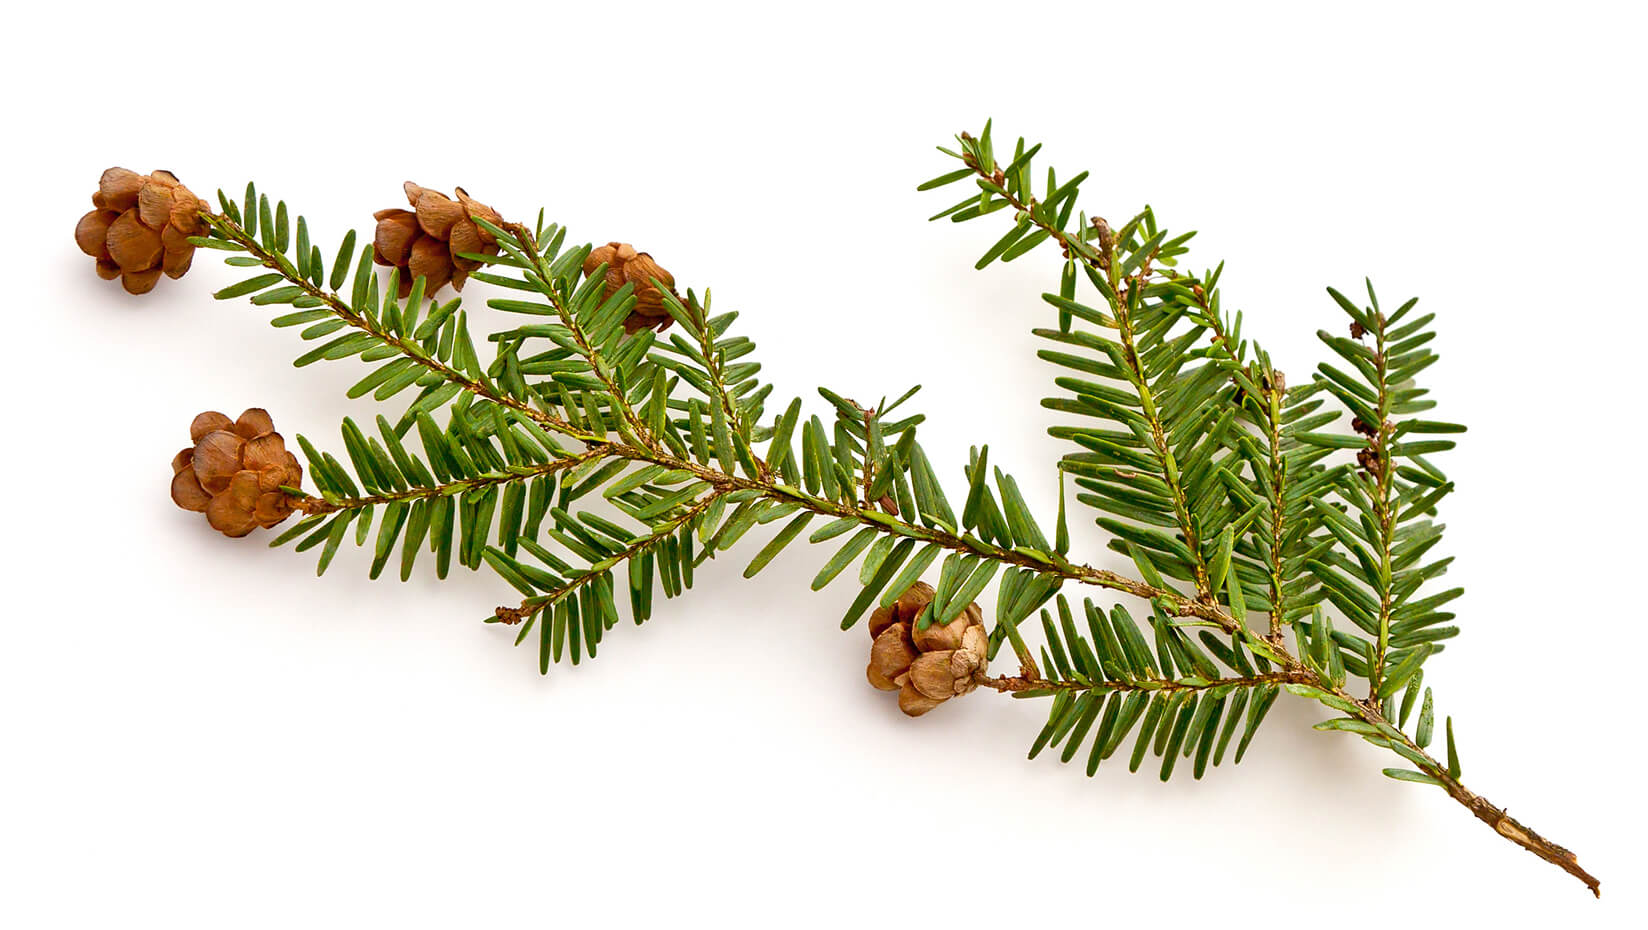 Eastern hemlock branch with pinecones